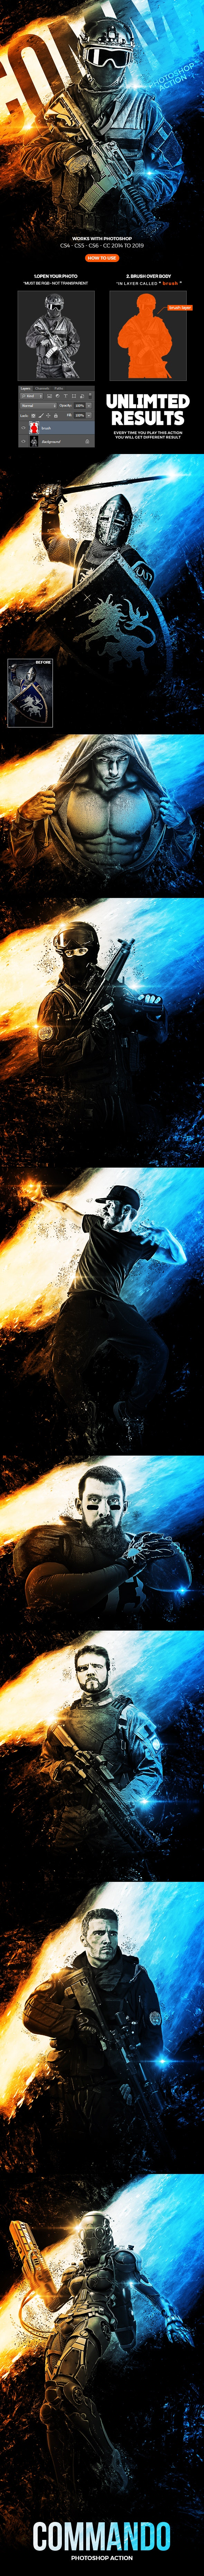 Commando Photoshop Action - Photo Effects Actions